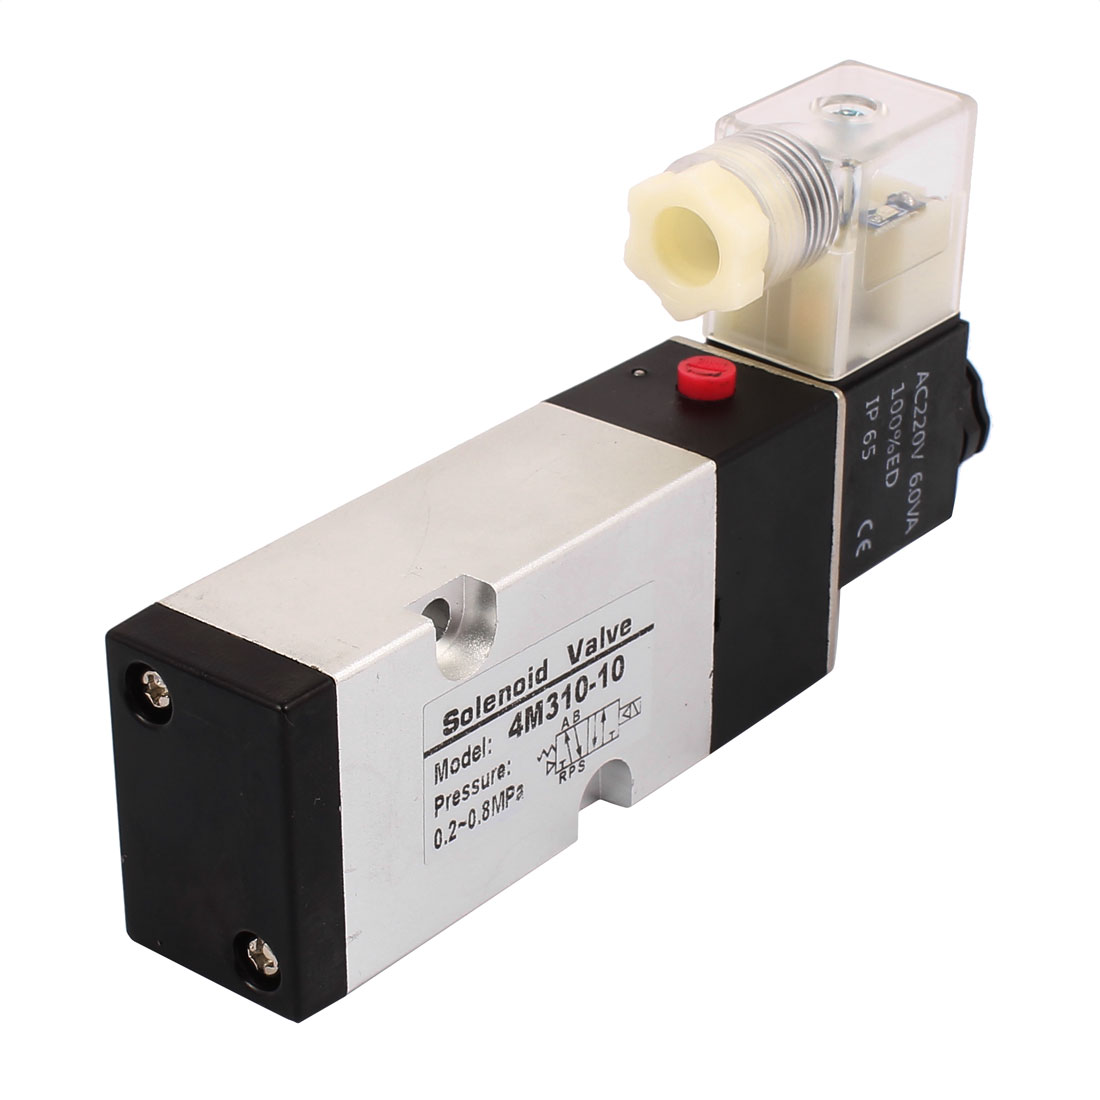 4M310-10 AC 220V 2 Position 5 Way G3/8 Neutral Air Selector Solenoid Valve